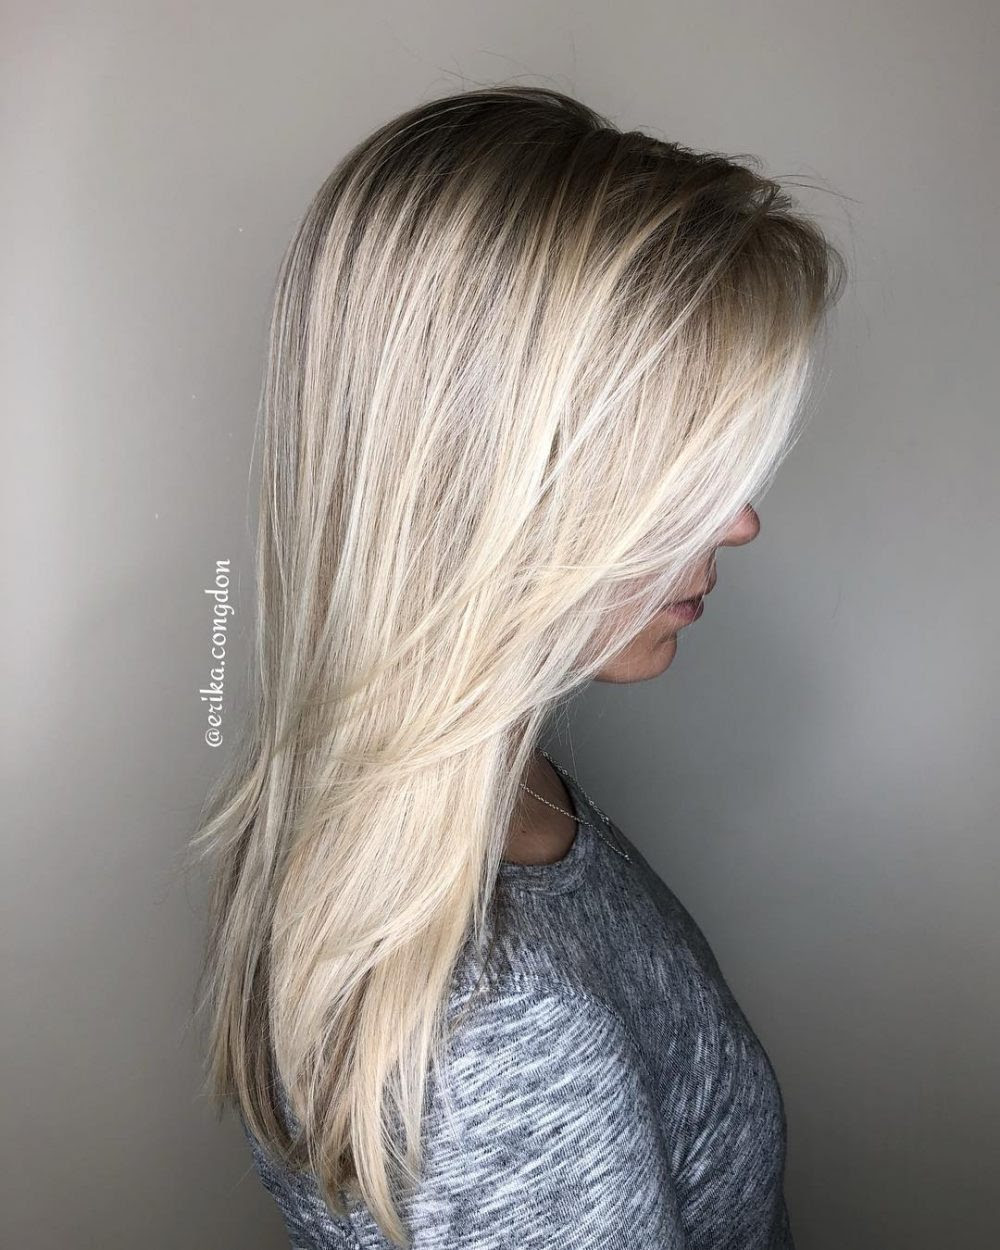 Hairstyles For Thin Long Hair | Uphairstyle